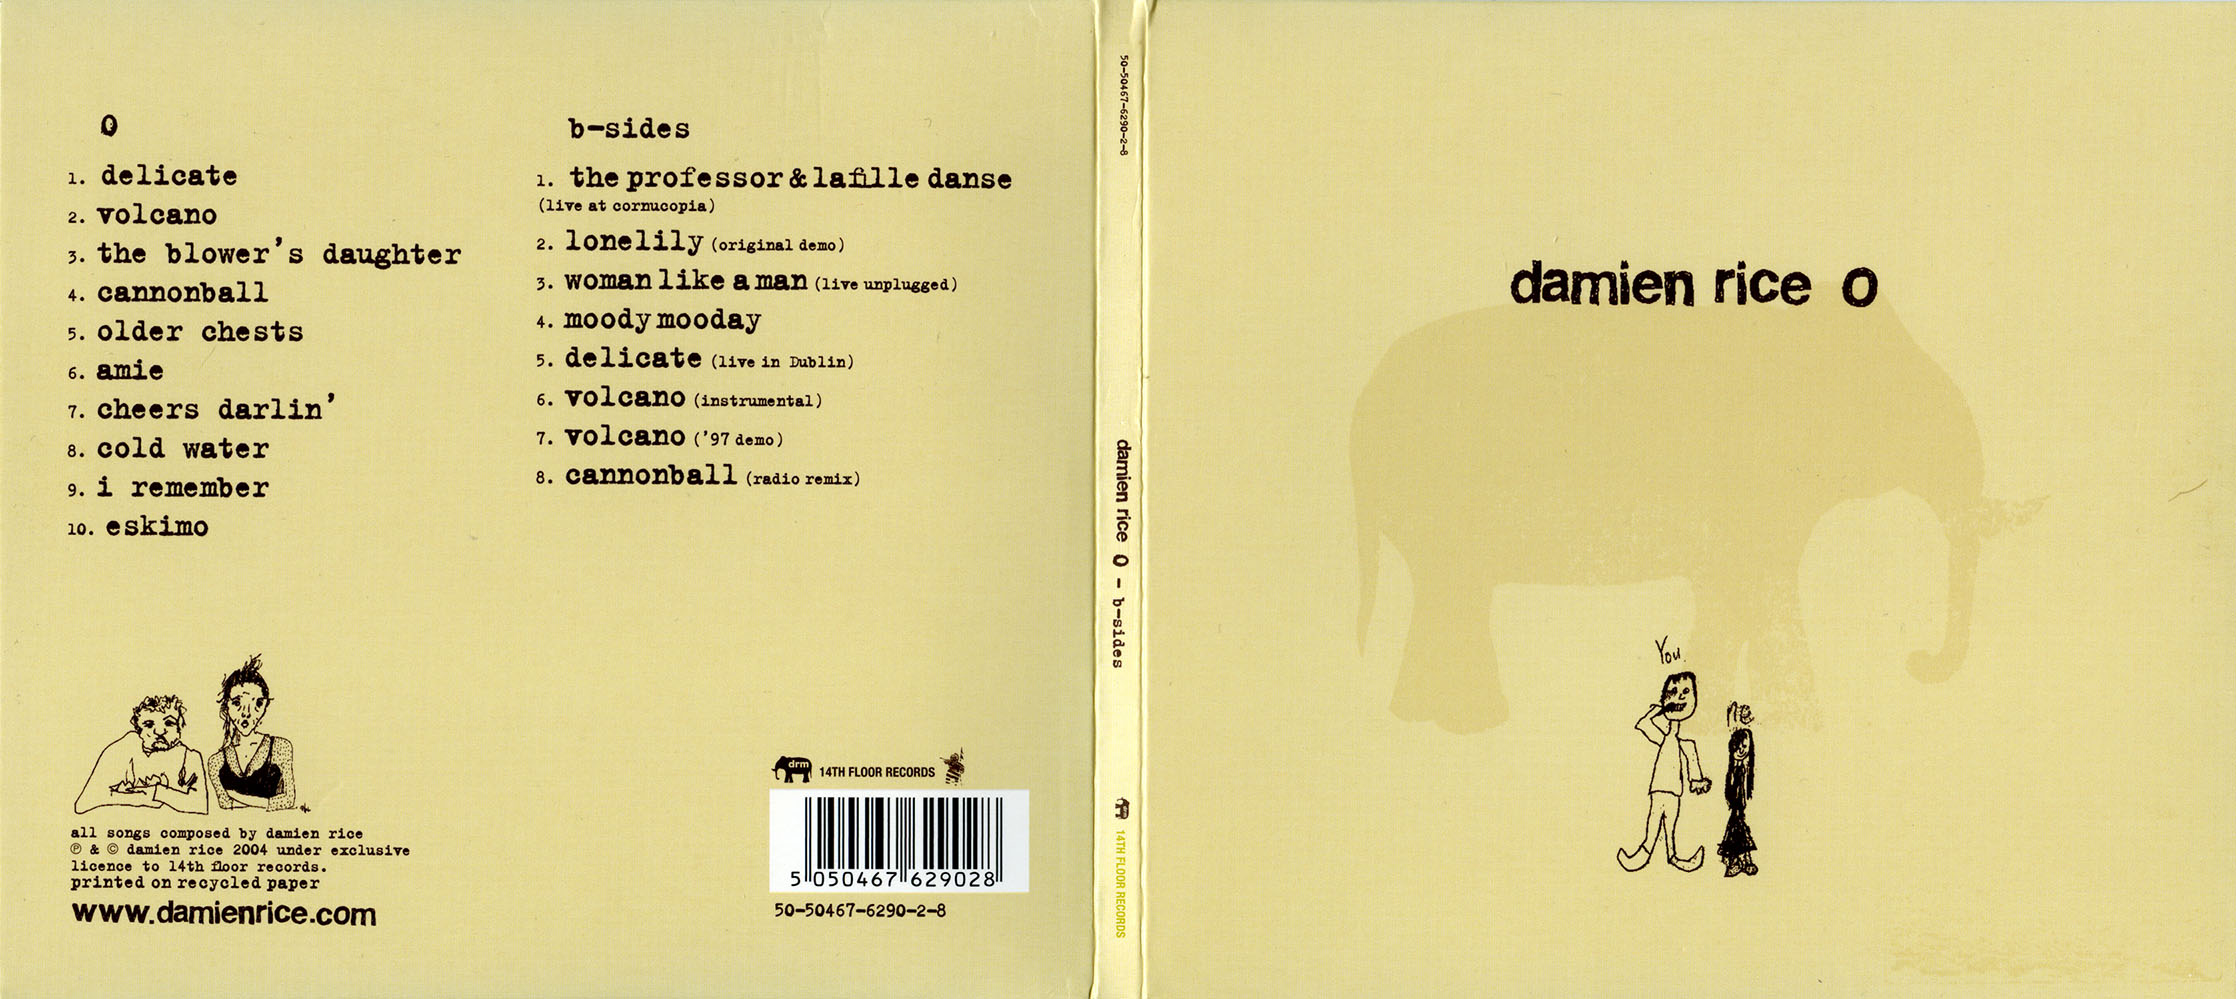 COVERS BOX SK ::: Damien Rice - O / B-Sides (2004) - high